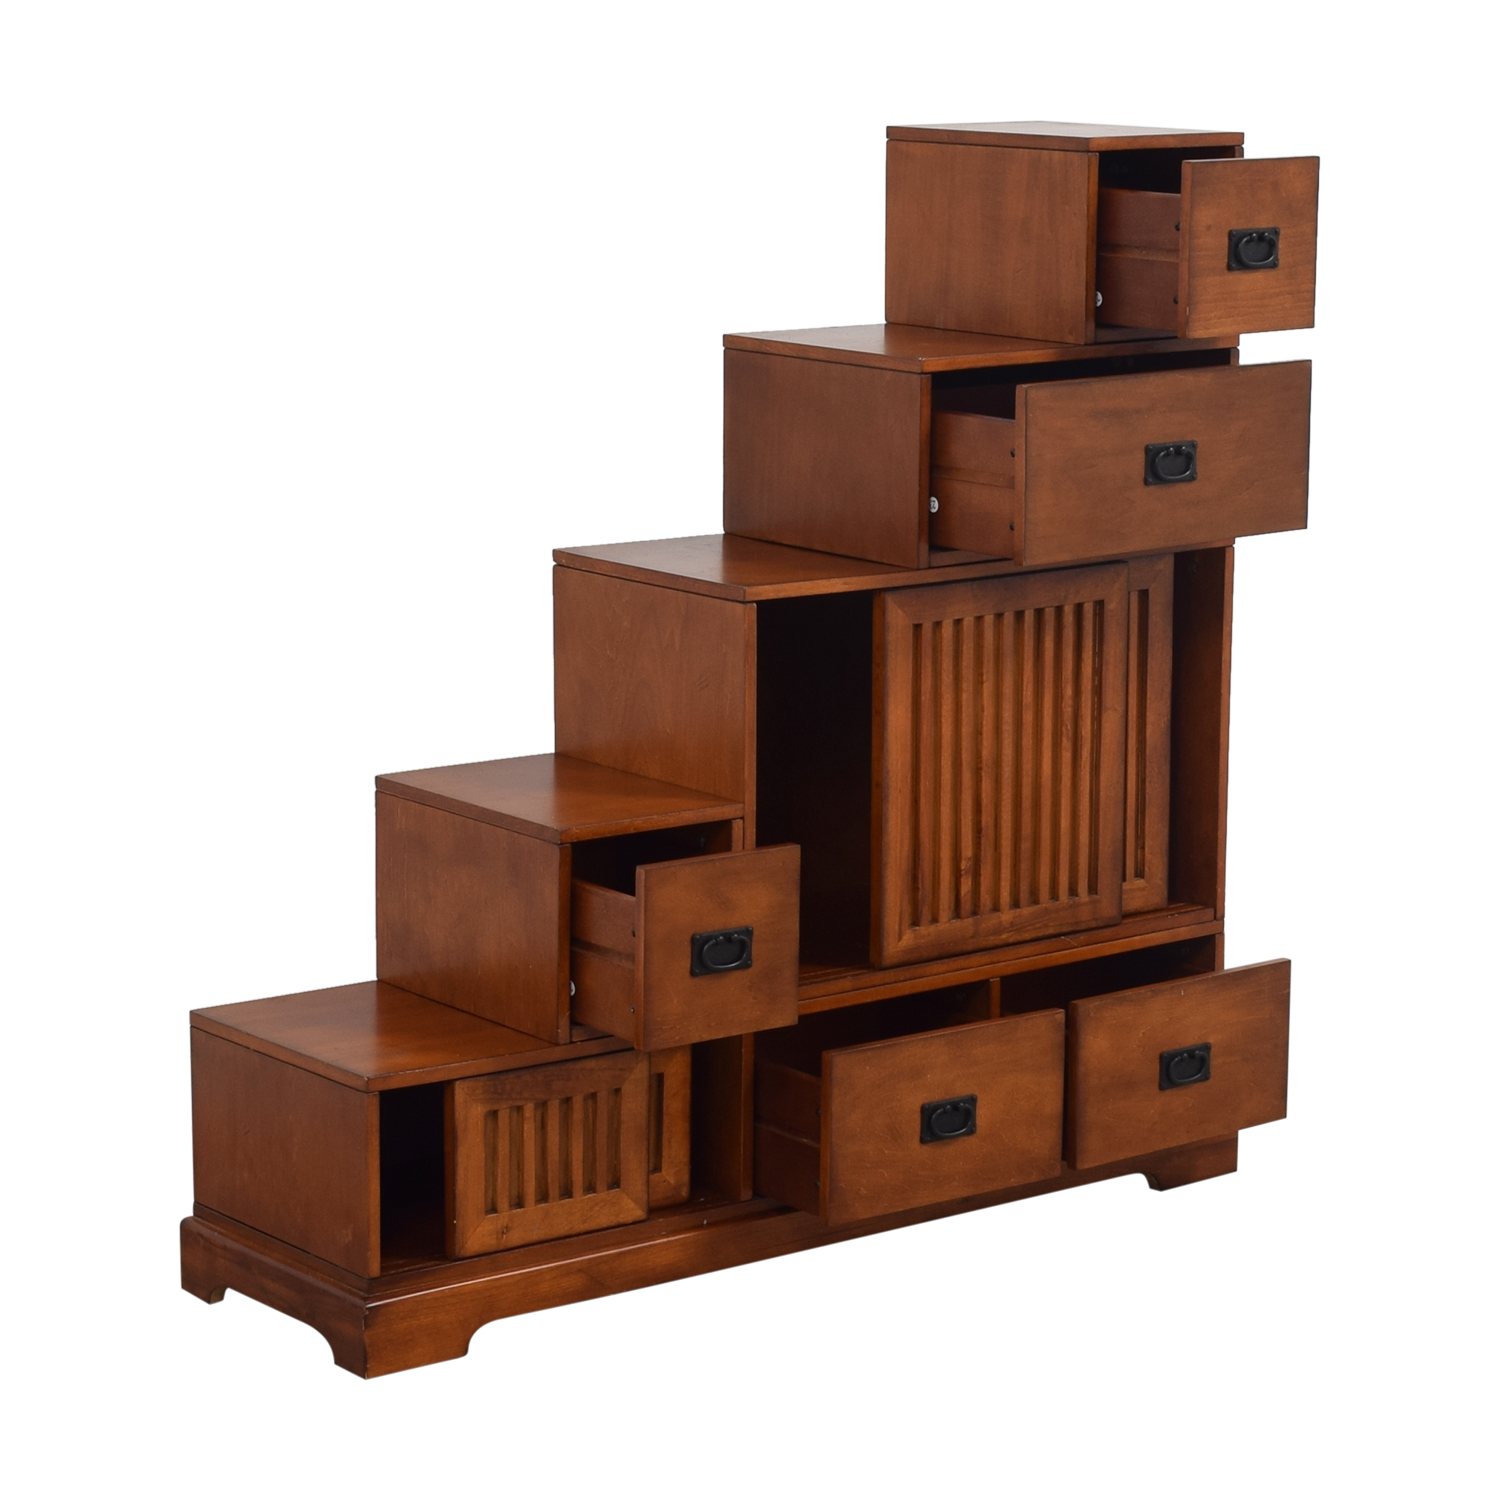 Incroyable ... Tansu Step Chest Used ...